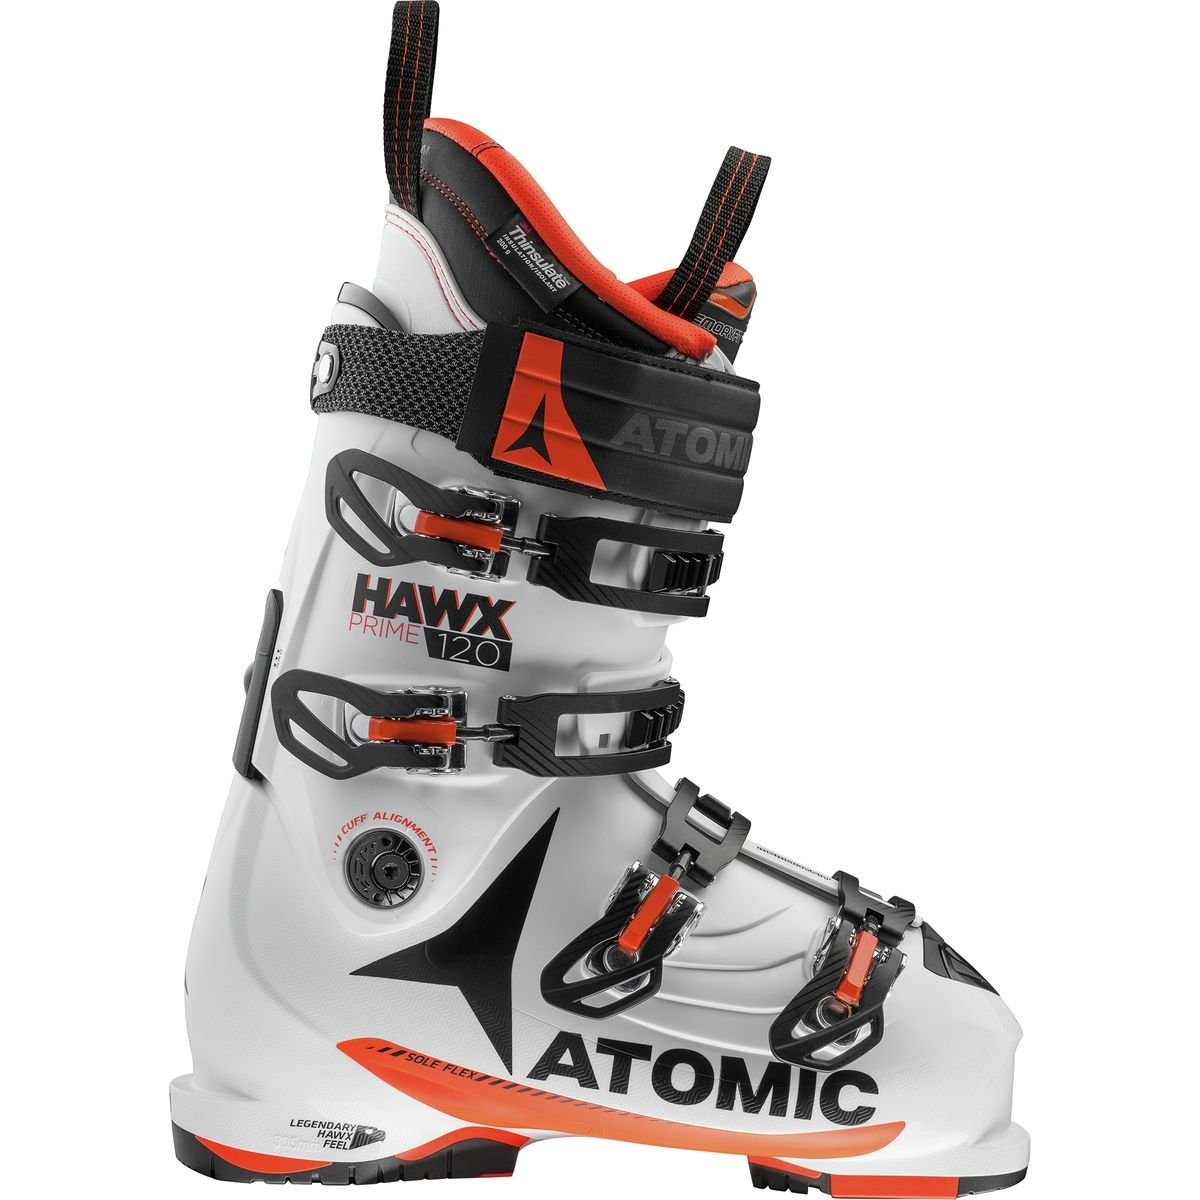 Atomic Hawx Prime 120 Ski Boot White/Orange, 26.5 by Atomic